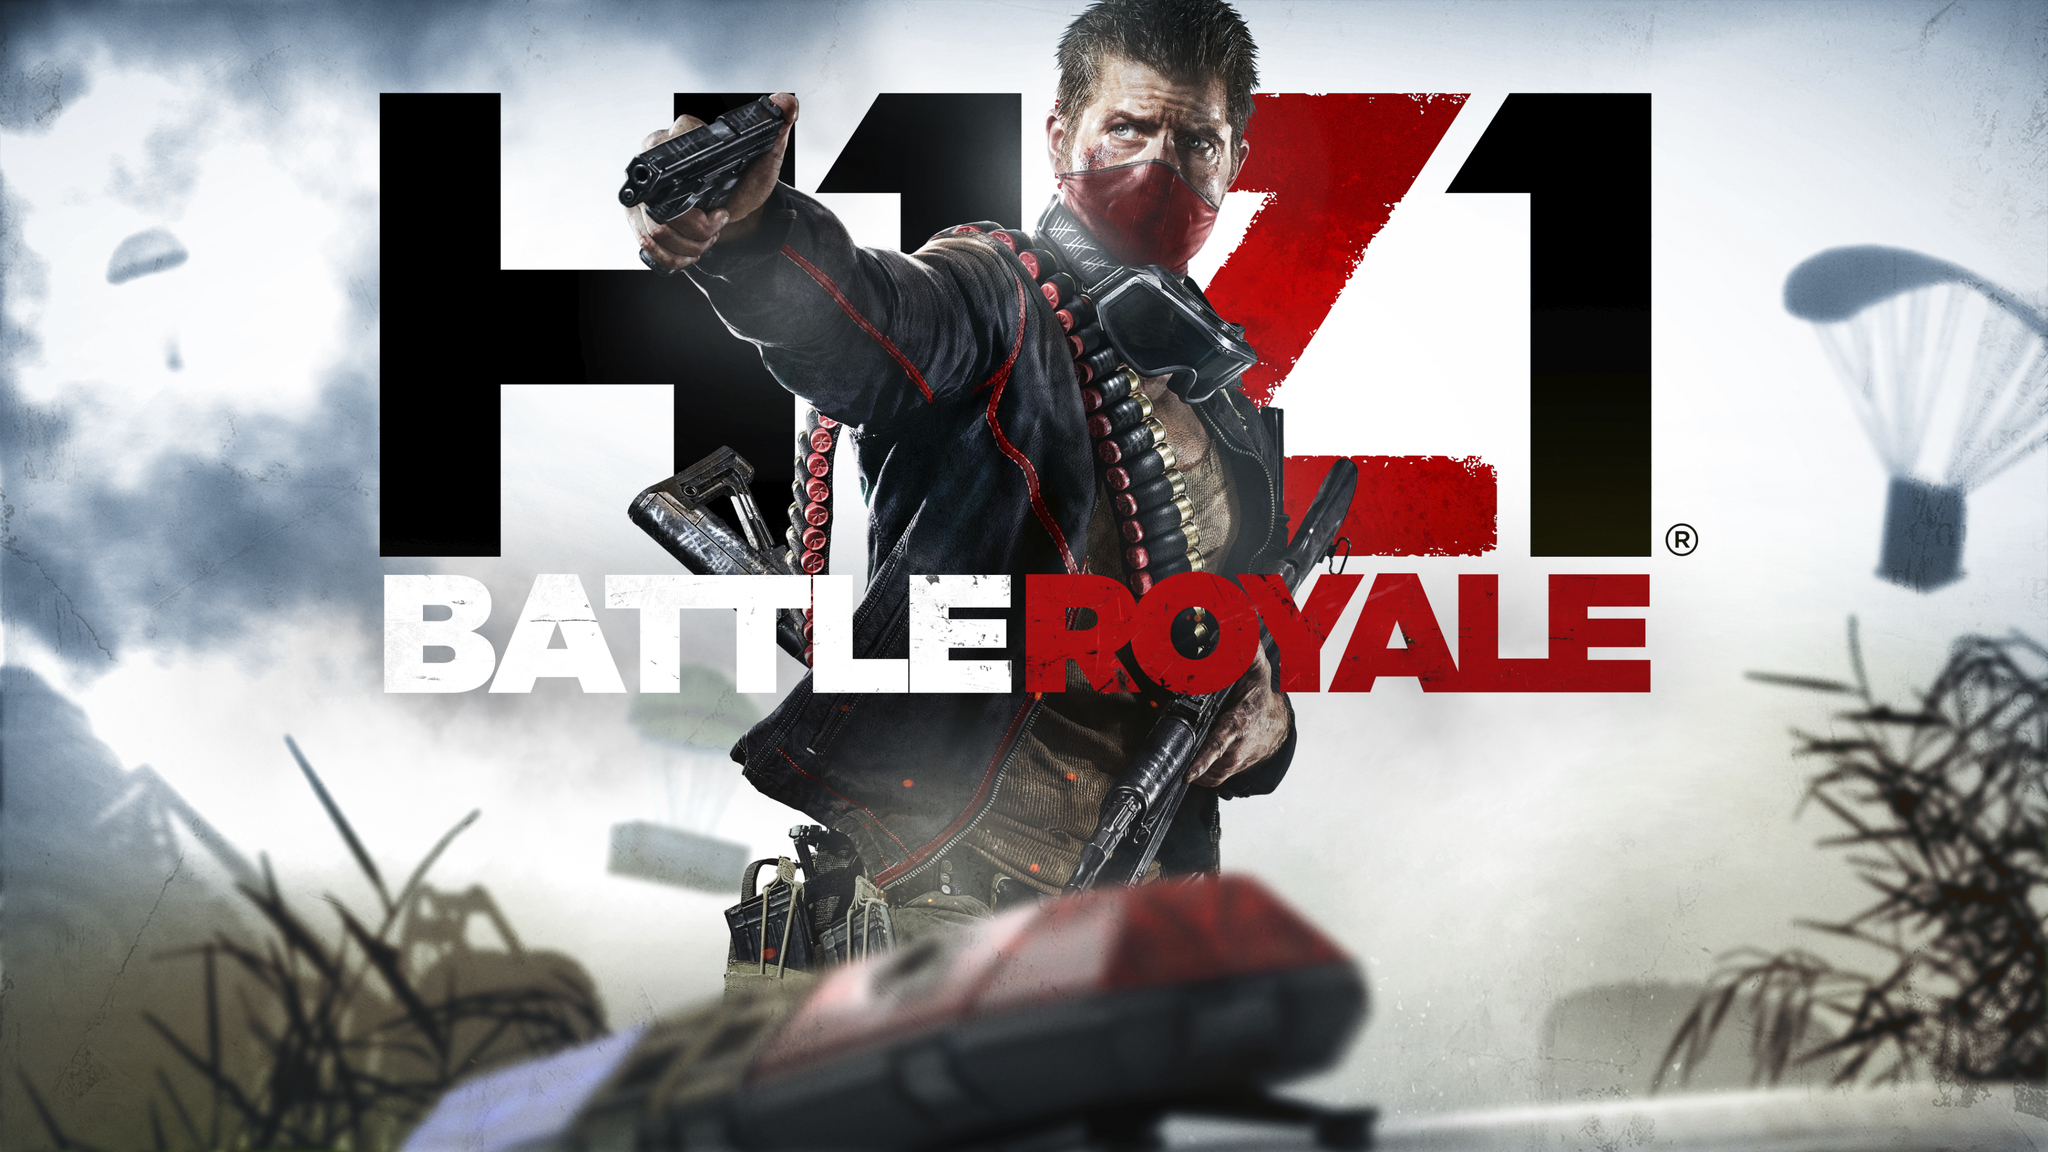 H1Z1 Pro League Is The Battle Royale Game Ready For